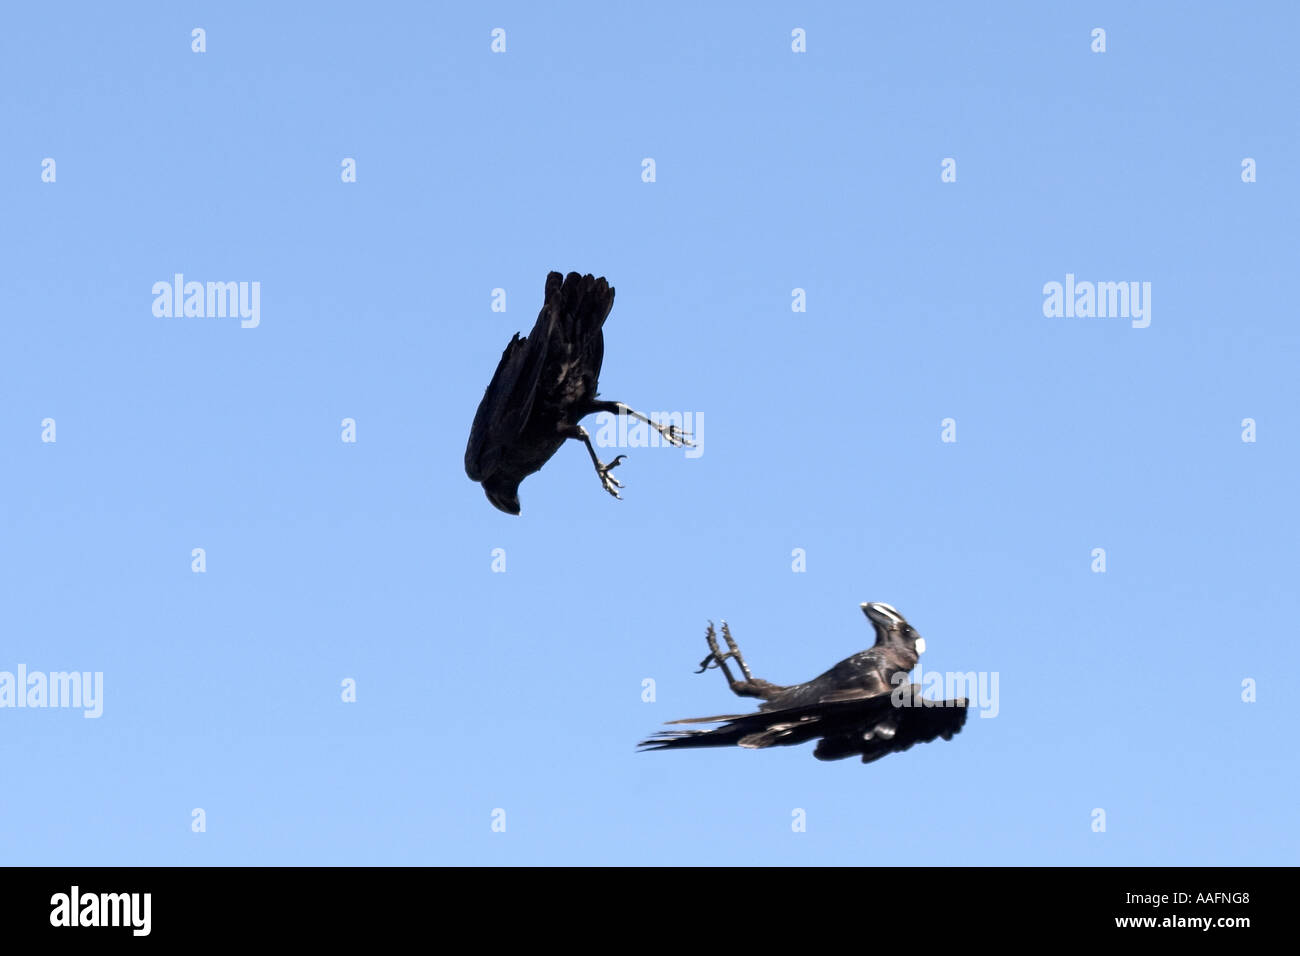 Two thick billed raven birds Corvus crassirostris fighting against blue sky - Stock Image